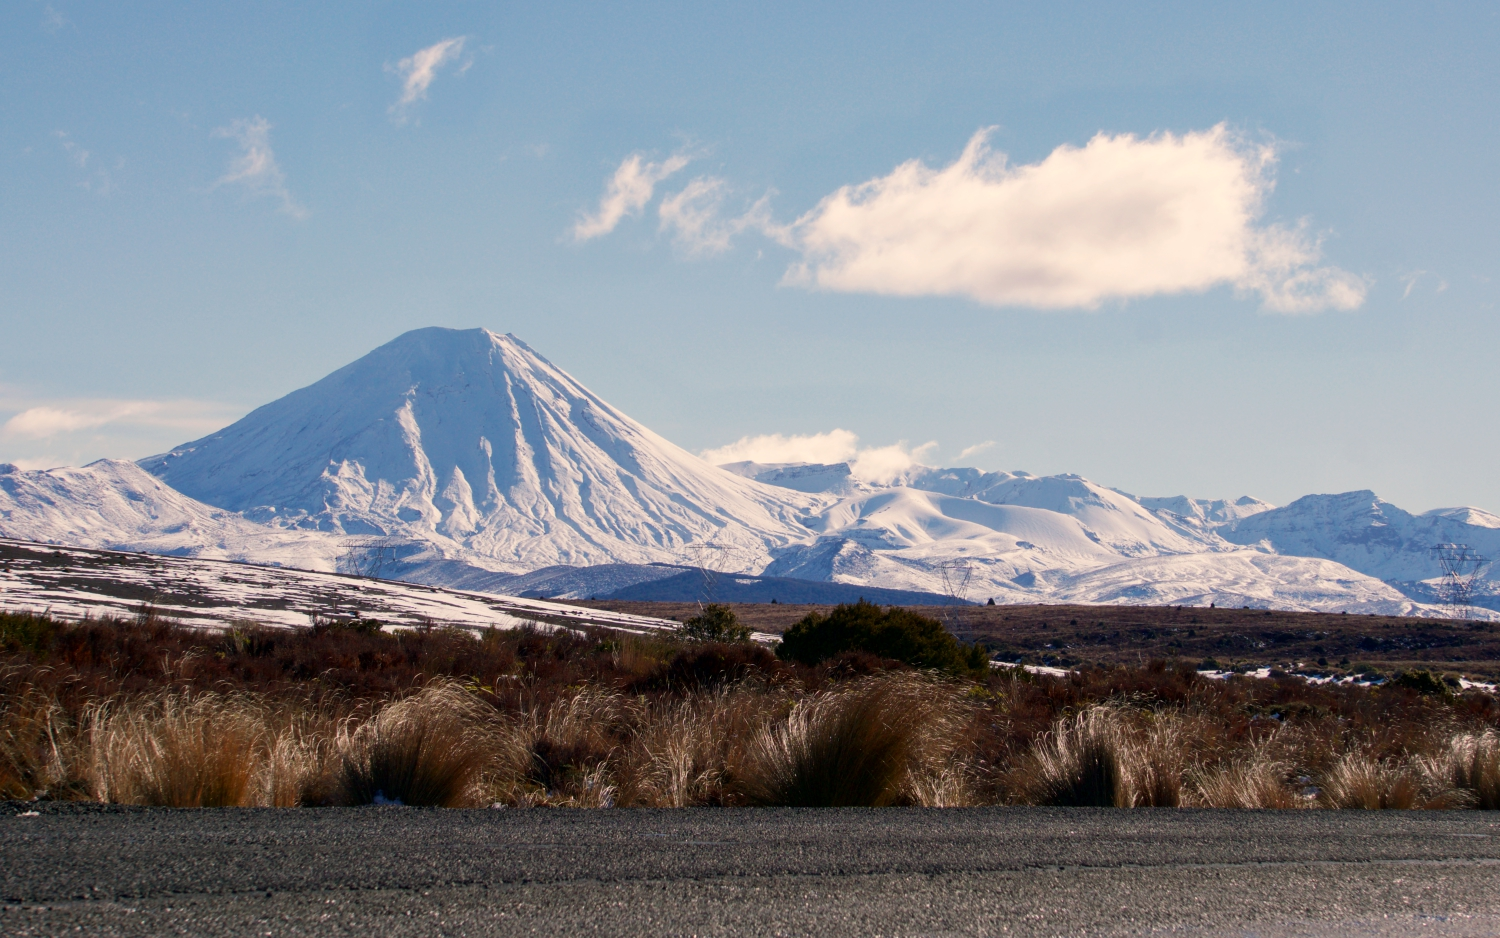 A view of Tongariro from the Desert Road.